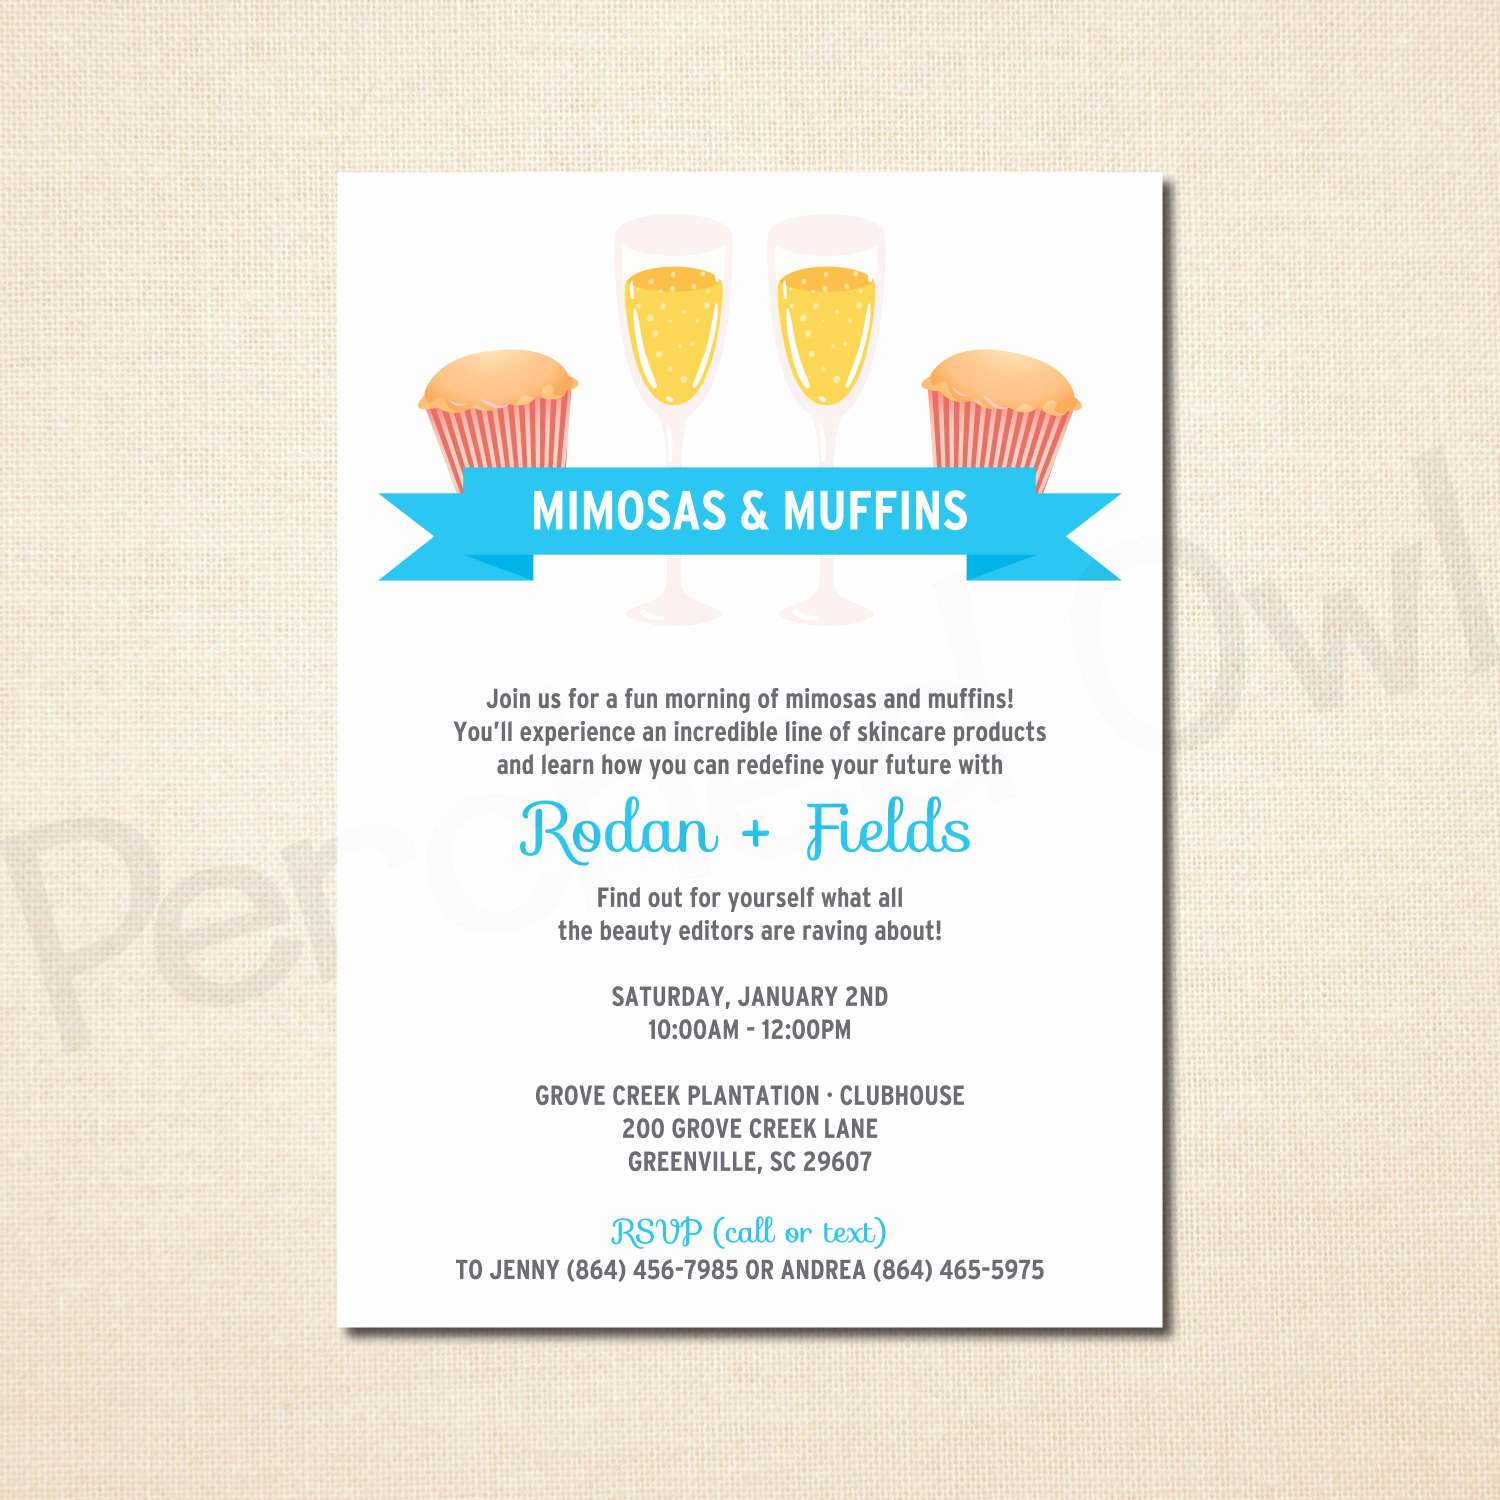 Rodan and Fields Invitation Templates Lovely Mimosas & Muffins Invitation Direct Selling Business